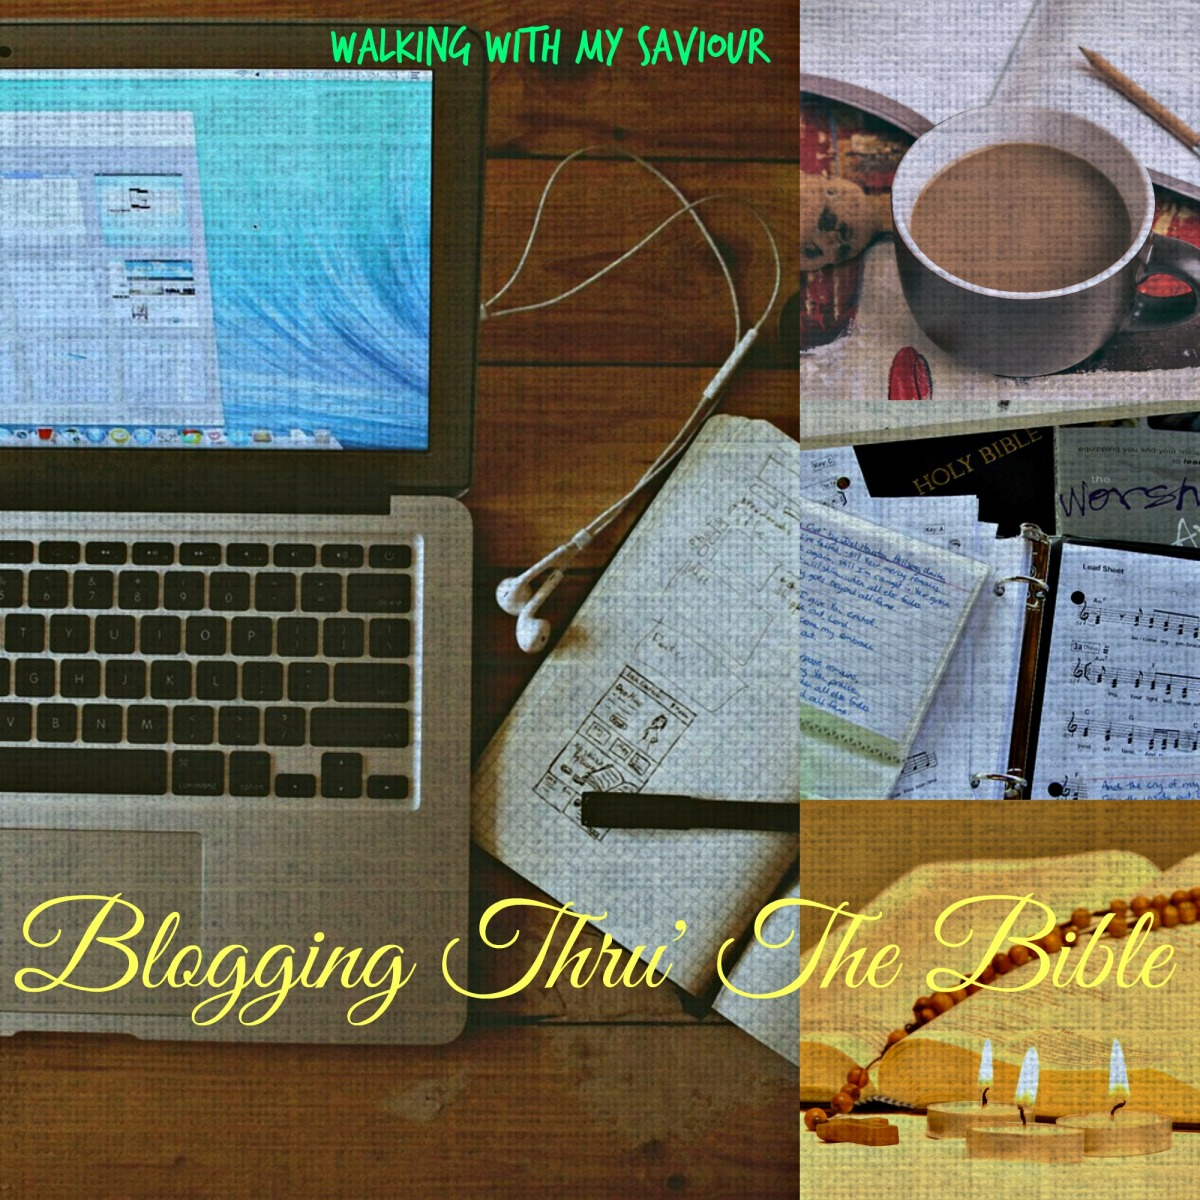 BLOGGING THRU THE BIBLE: 30 wise sayings of Solomon {Proverbs 22-24}